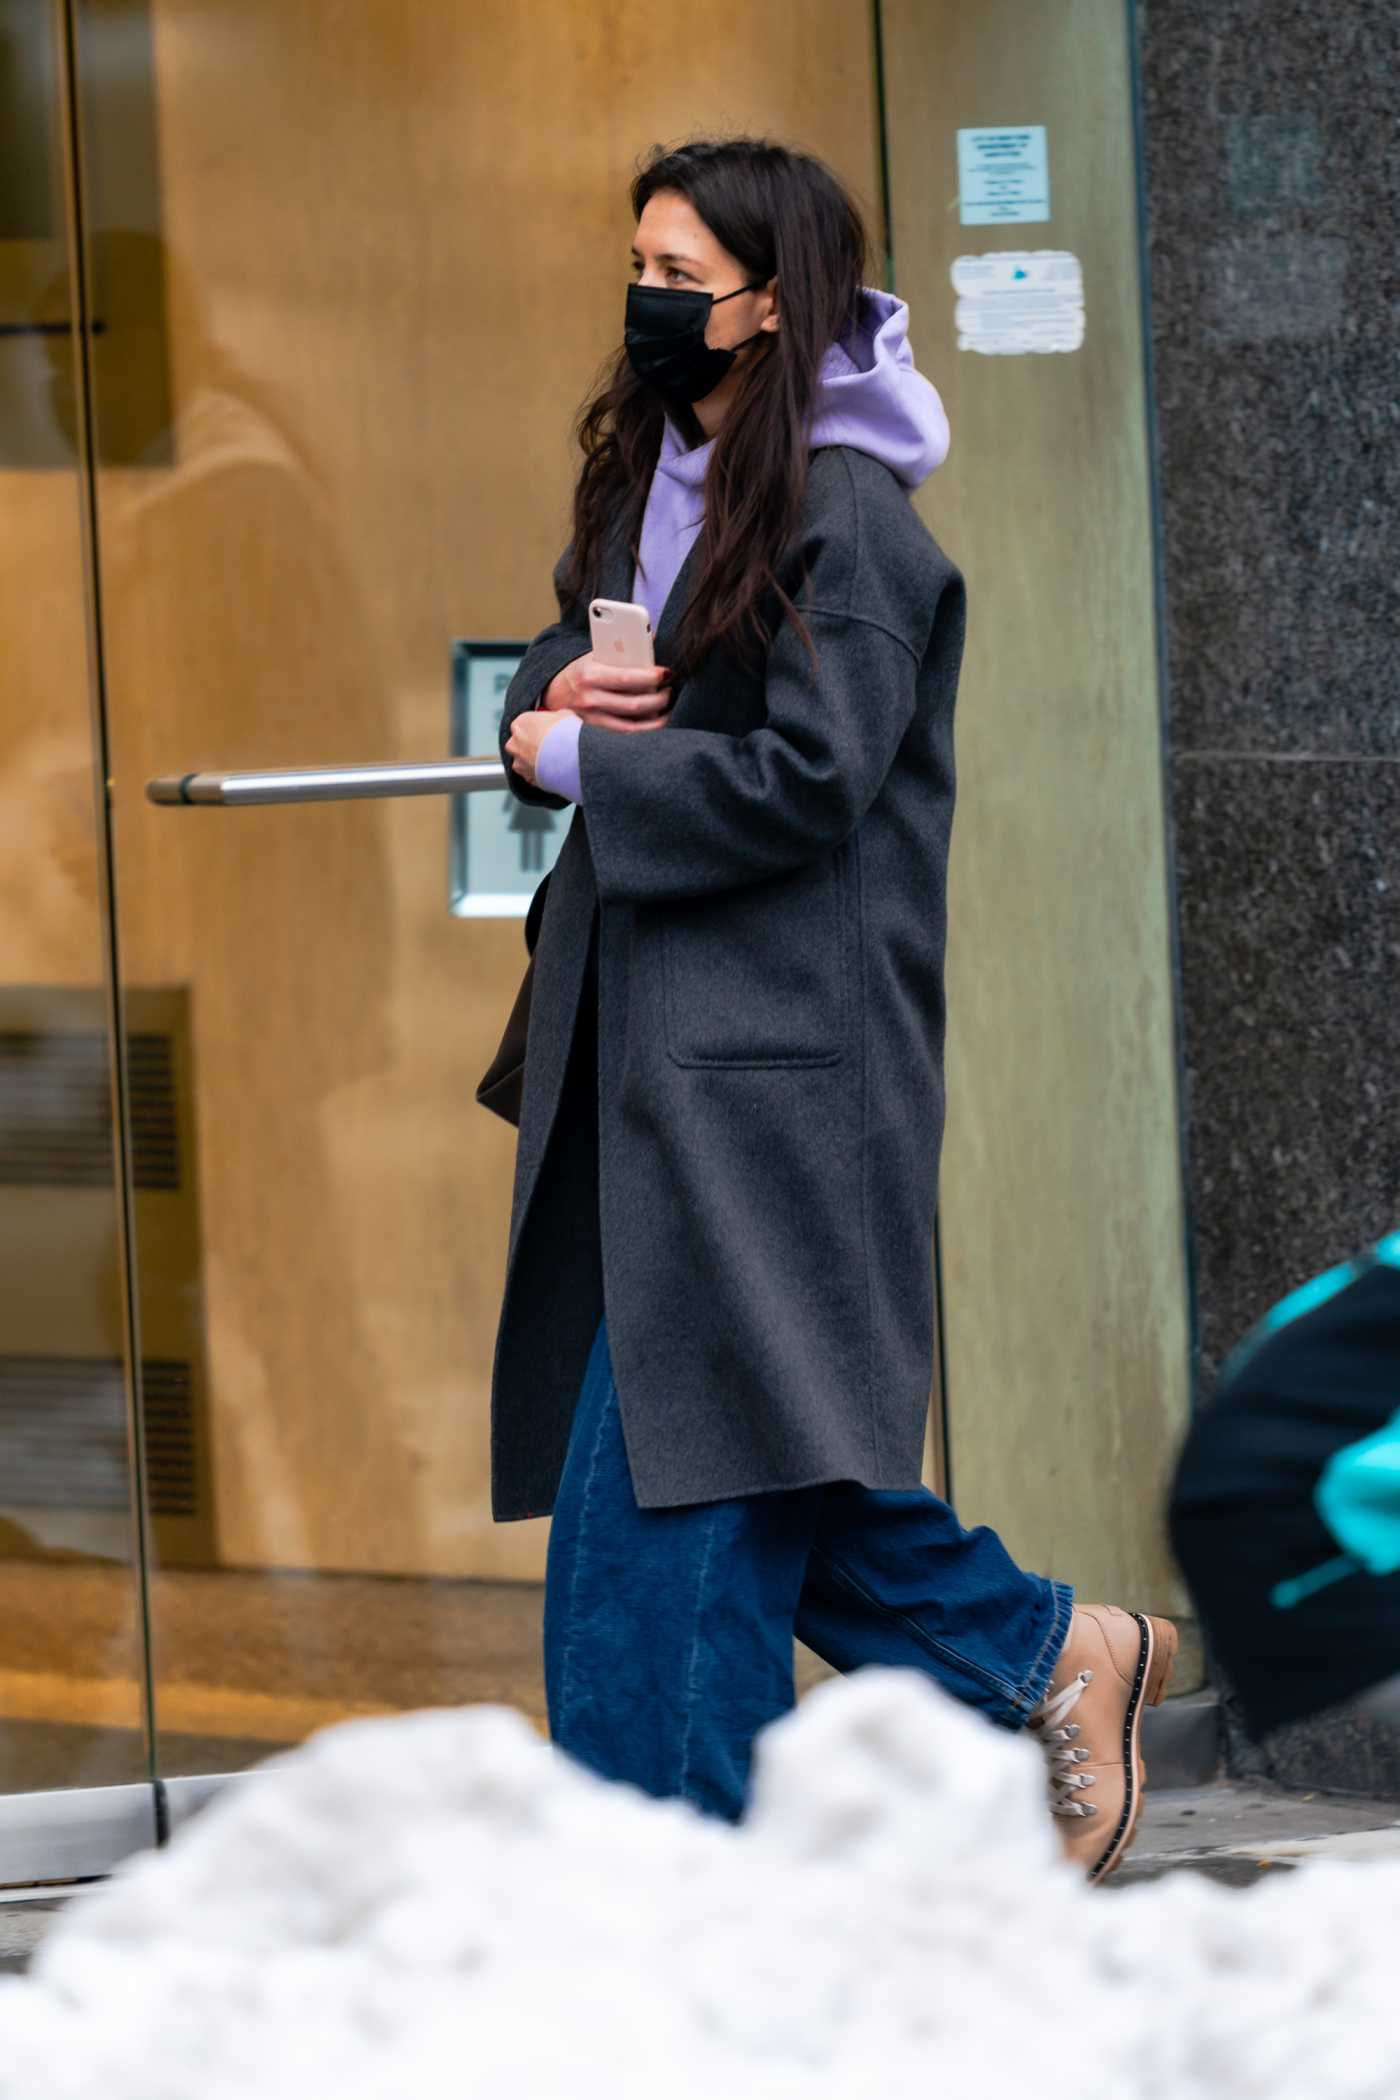 Katie Holmes in a Black Protective Mask Goes Shopping at ABC Carpet and Home in New York 12/20/2020